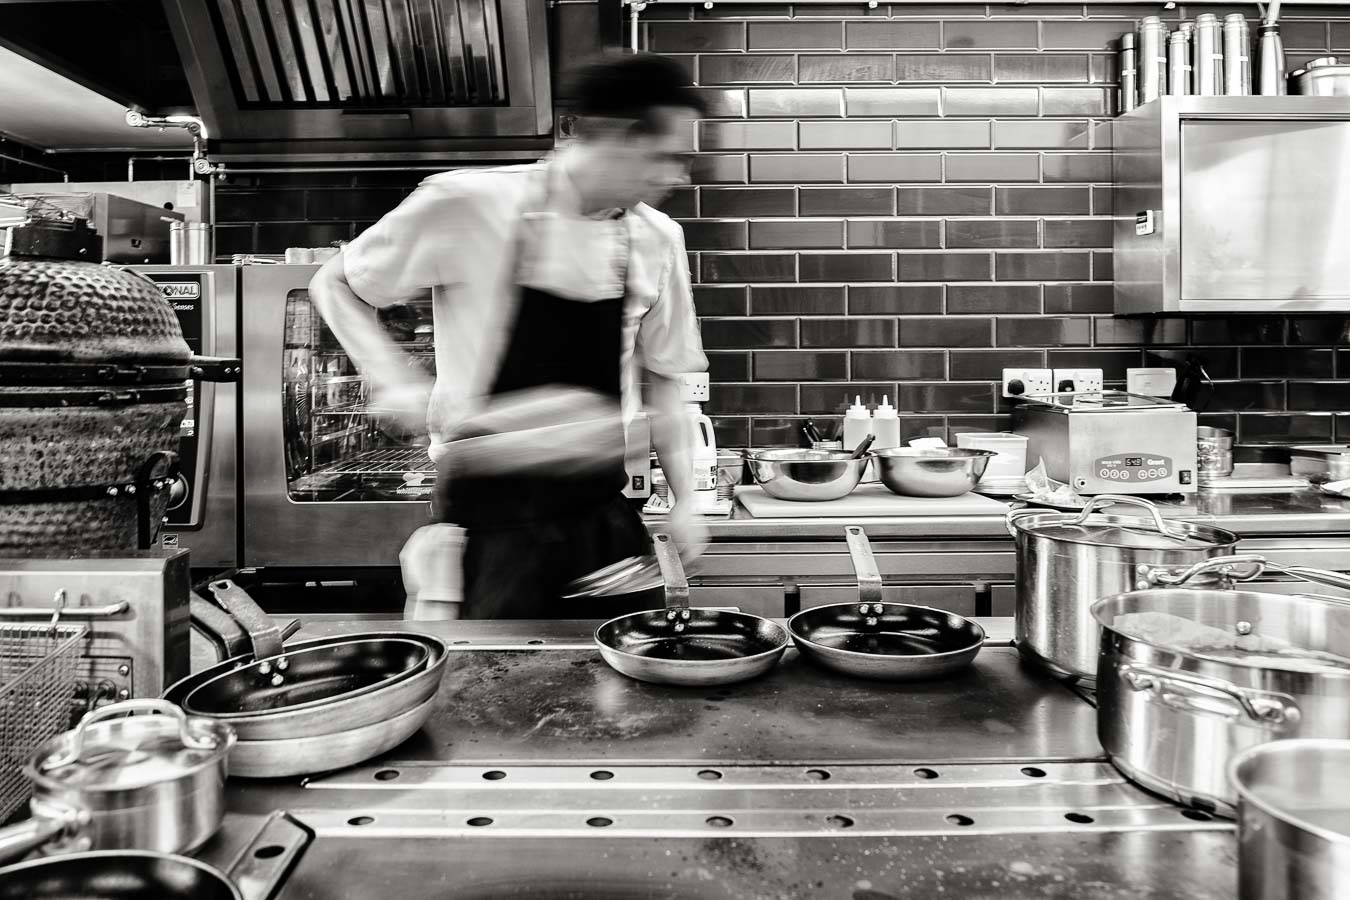 A chef at the stove, holding a pan and moving to the right causing motion blur